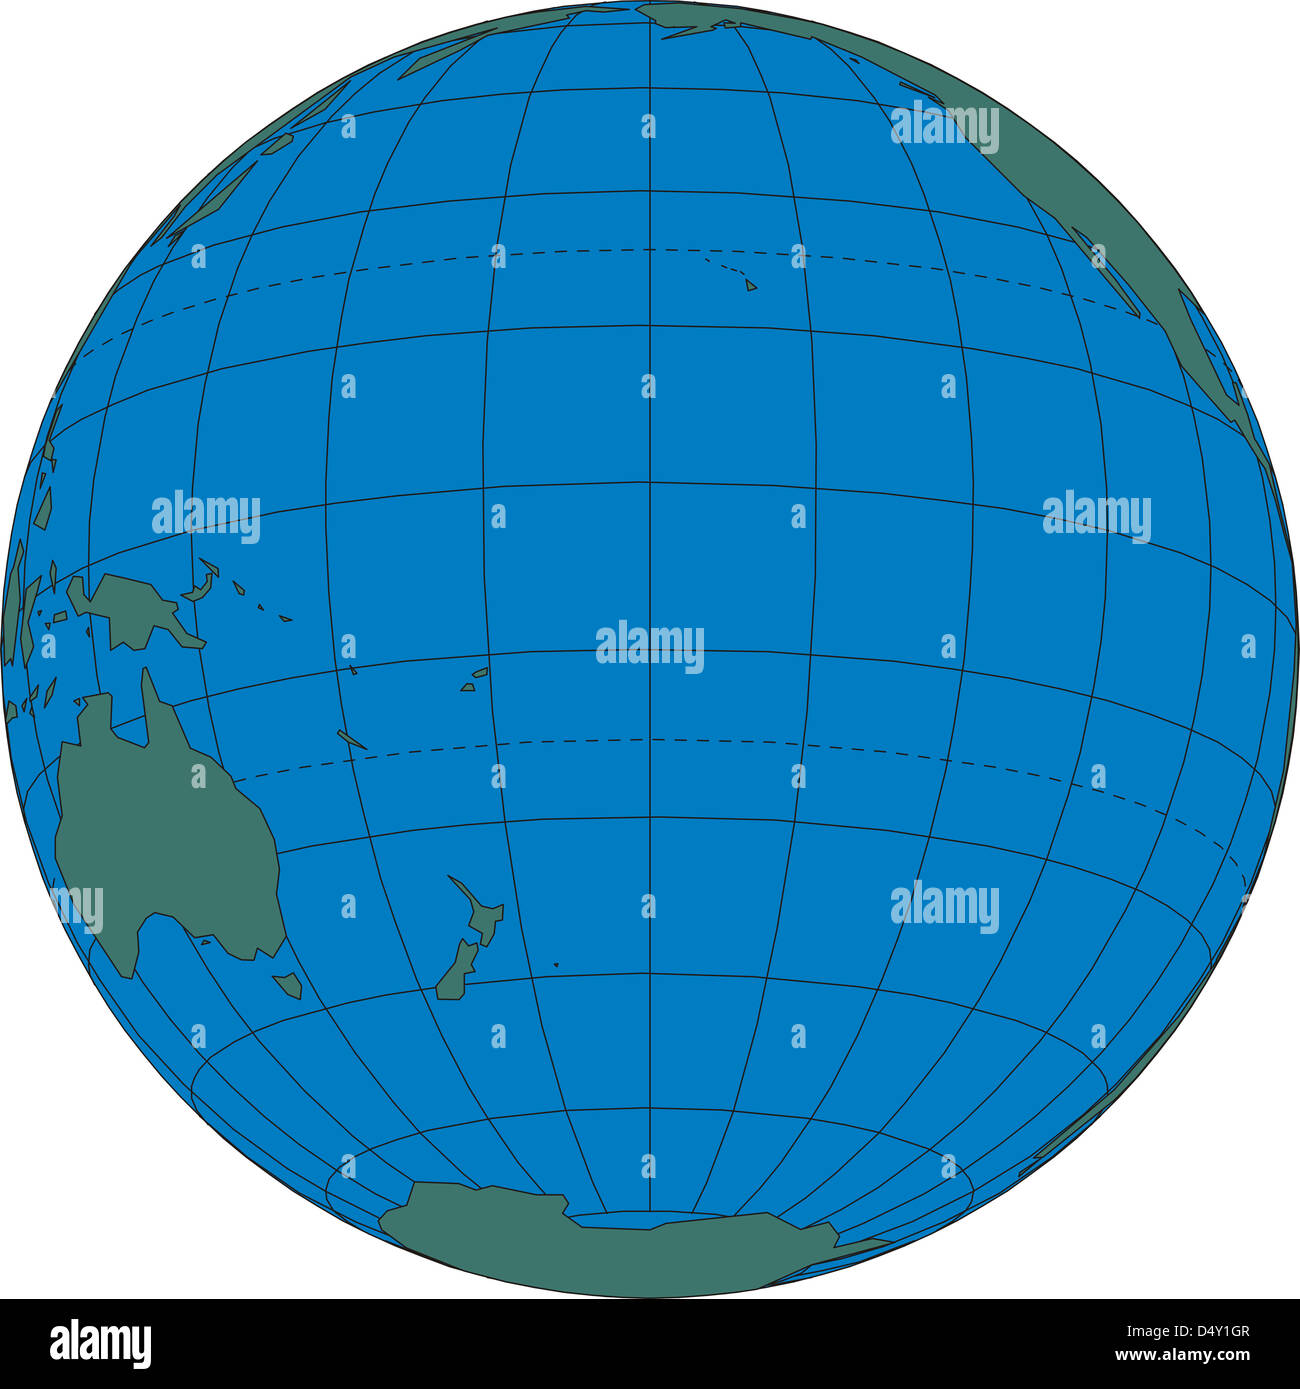 World map globe south pacific ocean stock photo 54683687 alamy world map globe south pacific ocean gumiabroncs Choice Image